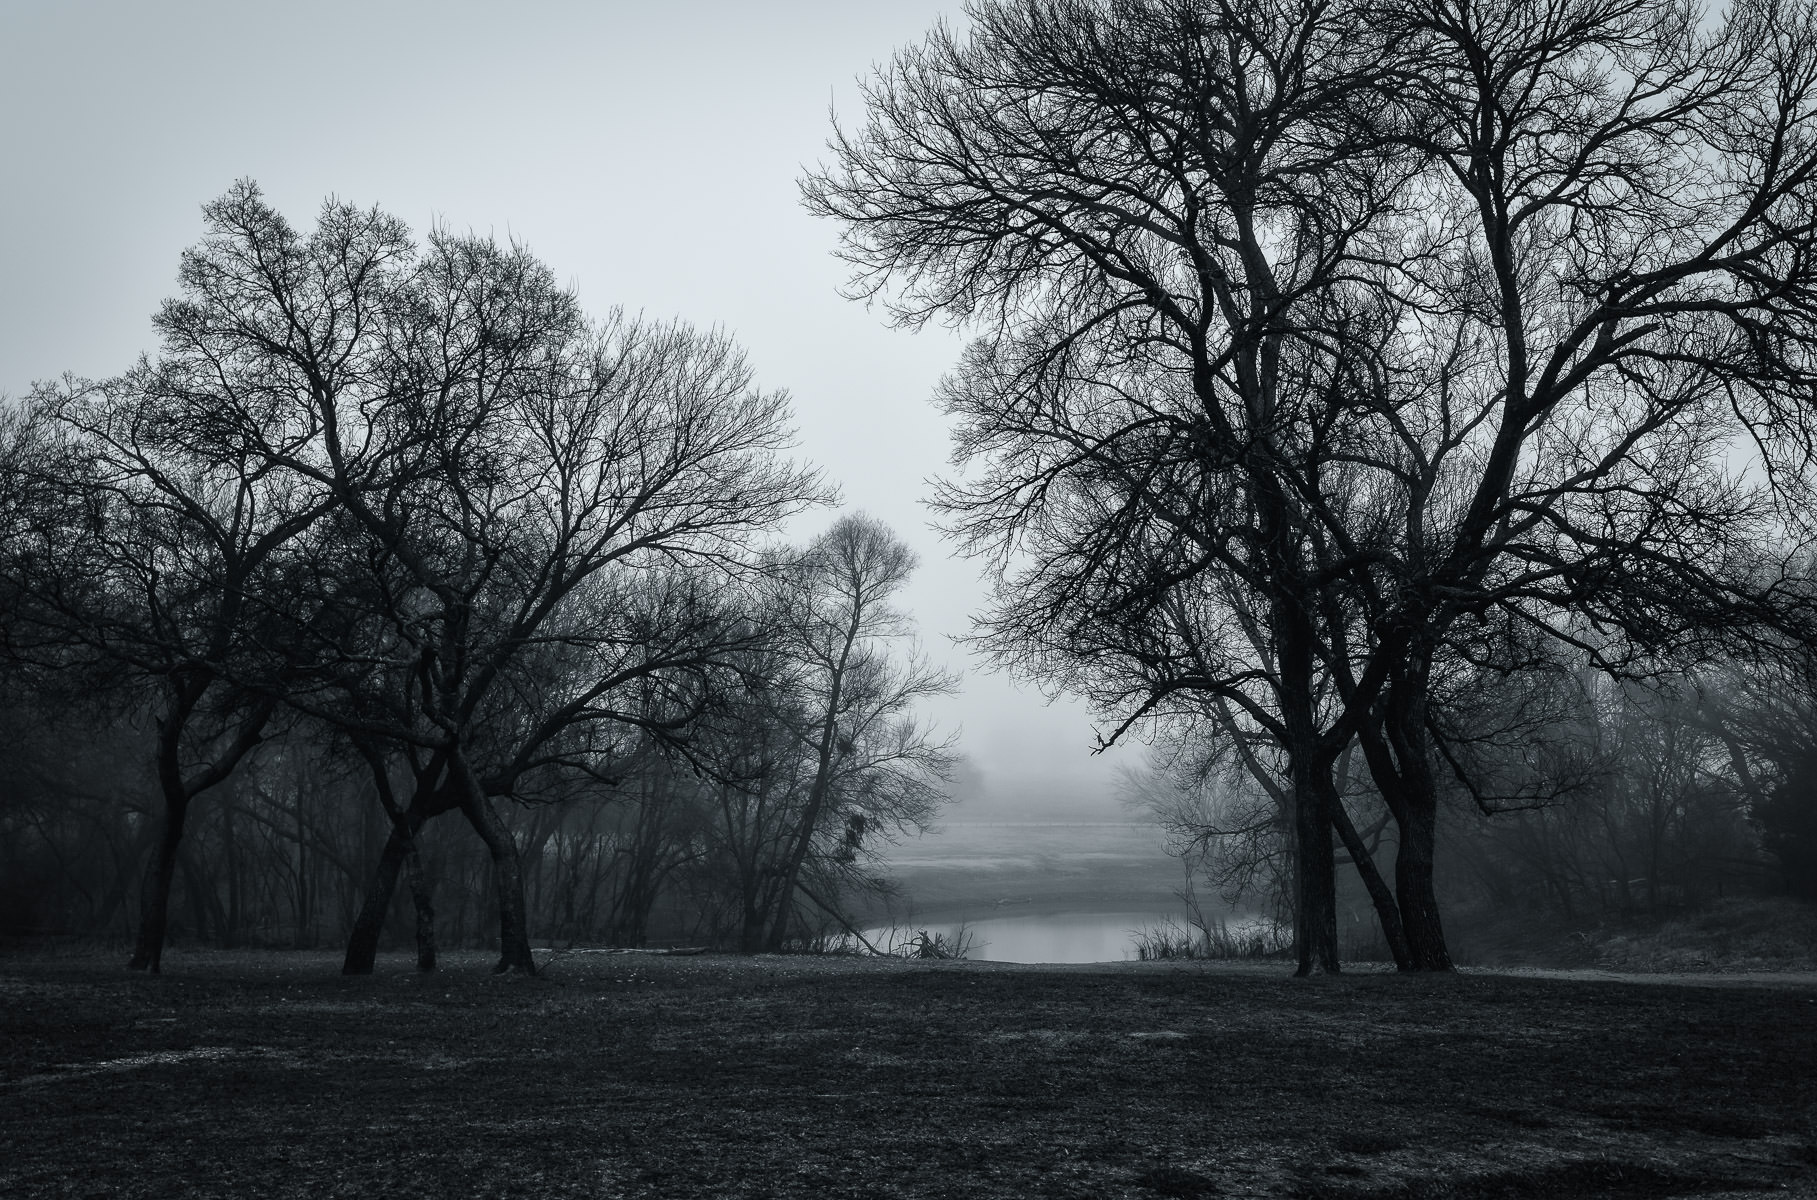 McKinney, Texas' Erwin Park in the early-morning fog.